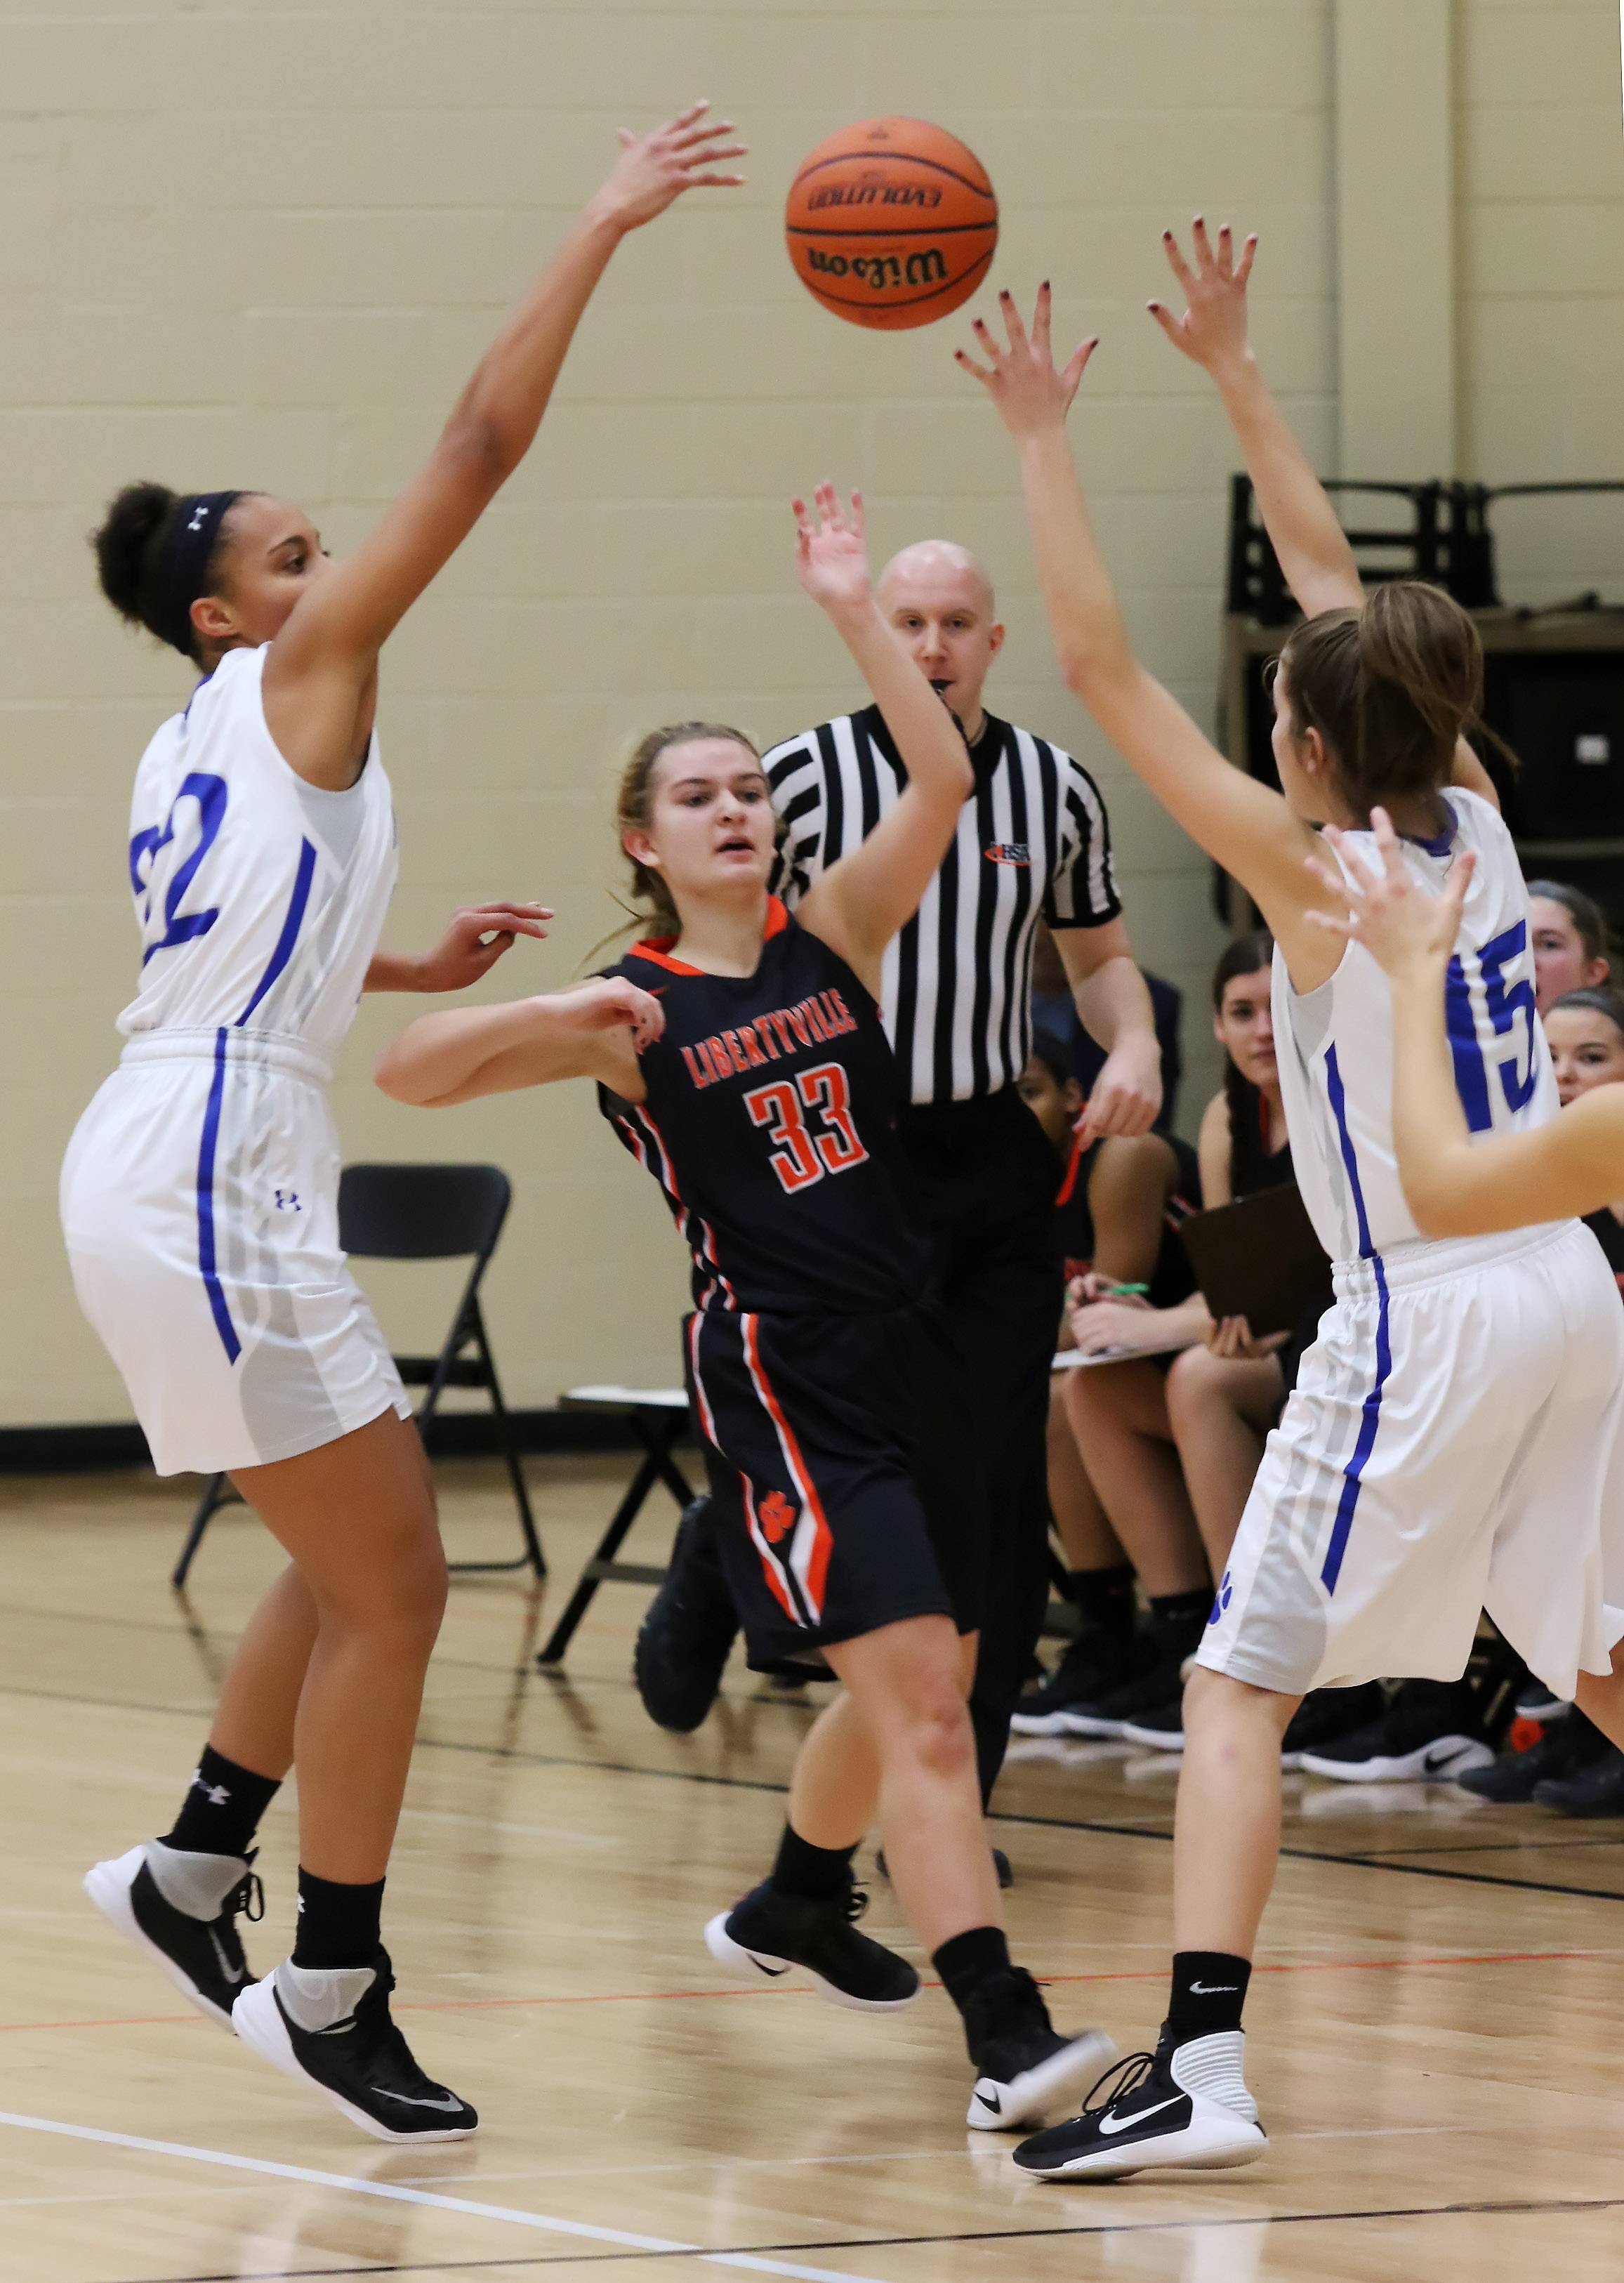 Libertyville guard Morgan Manski tries to pass out of double team with Vernon Hills' Kayla Caudle, left, and Kylie Bunning defending during tournament play Thursday at Libertyville.